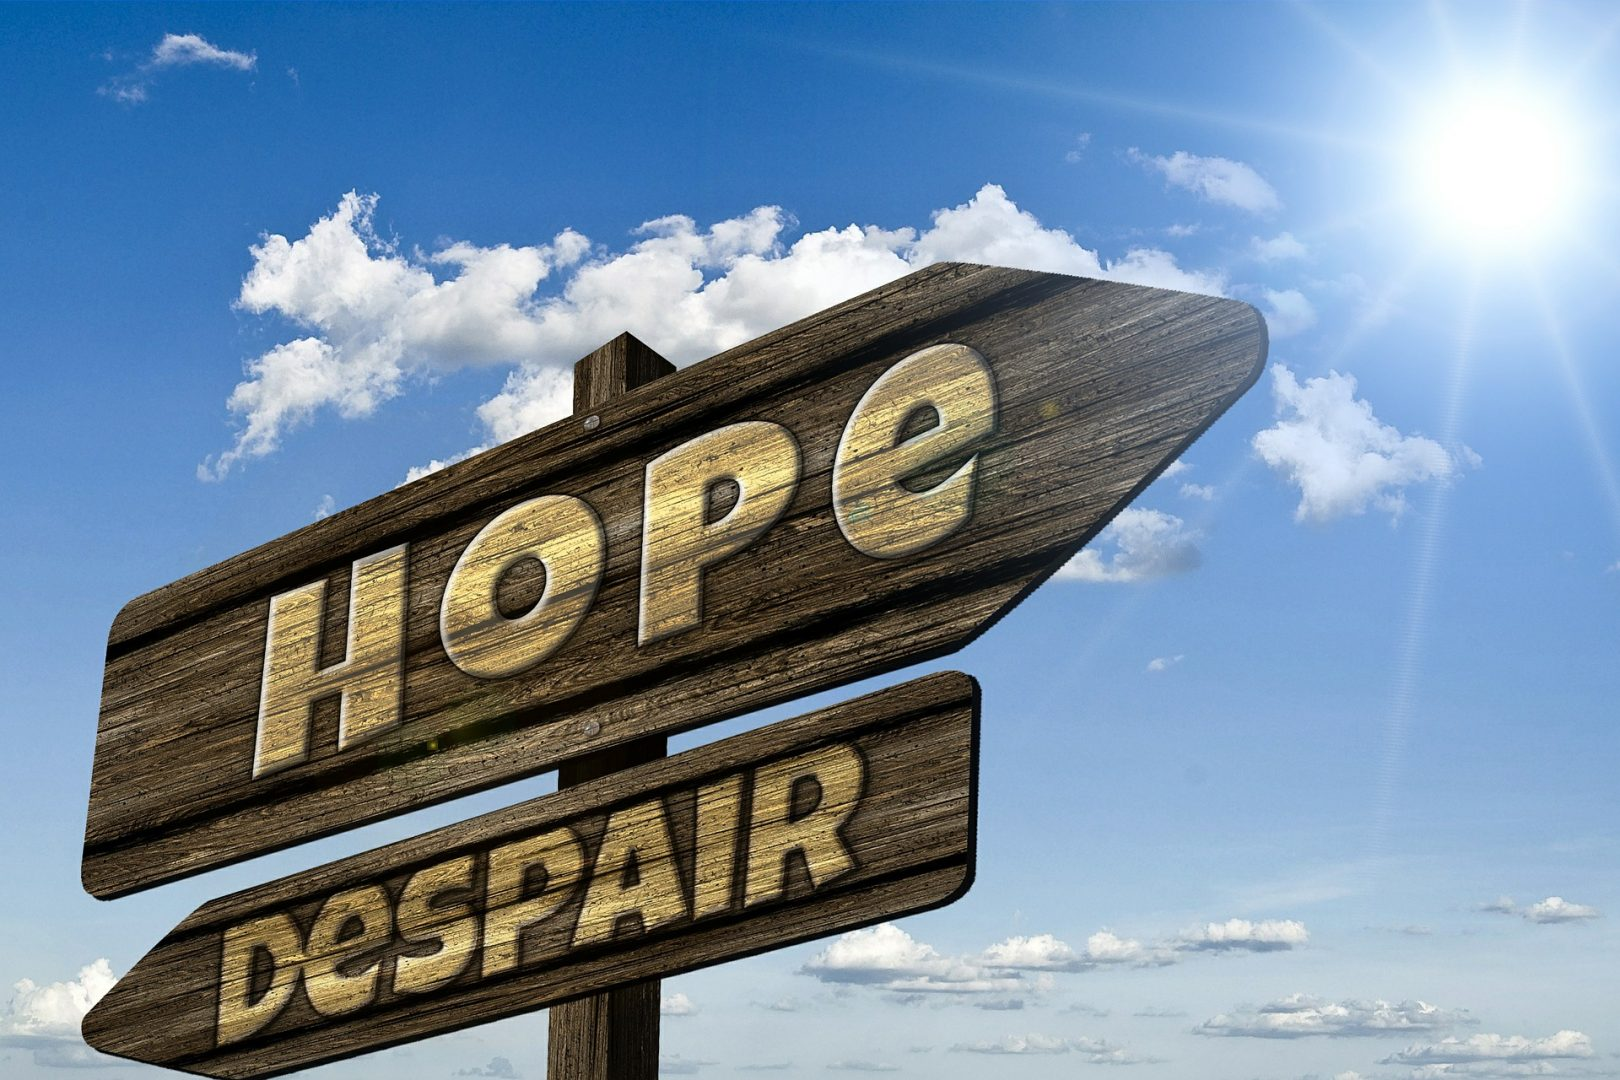 Allow yourself to hope – it's good for you